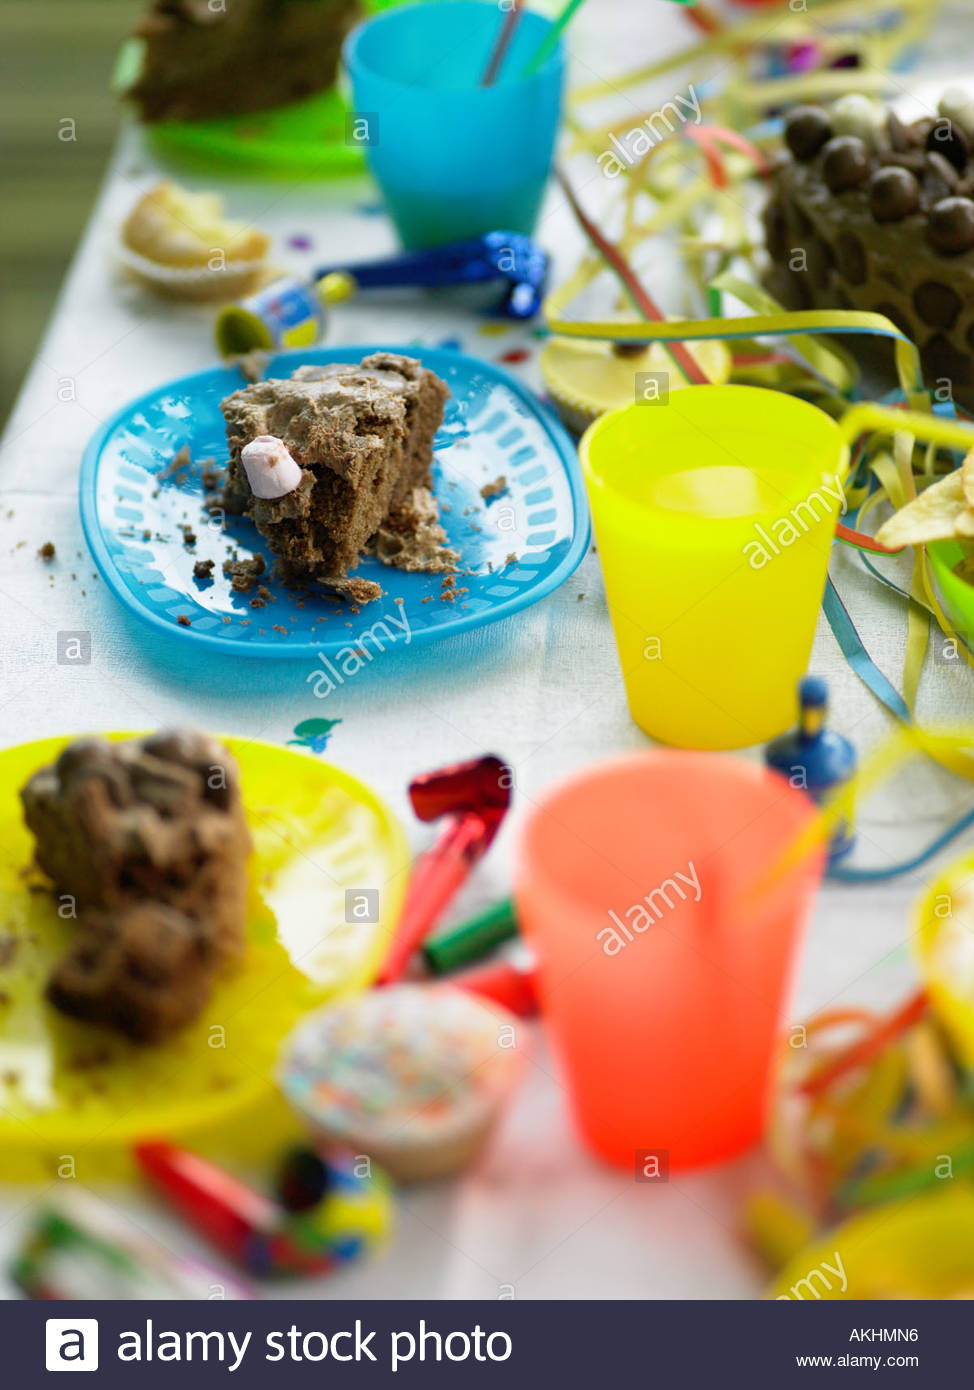 Messy birthday party table - Stock Image